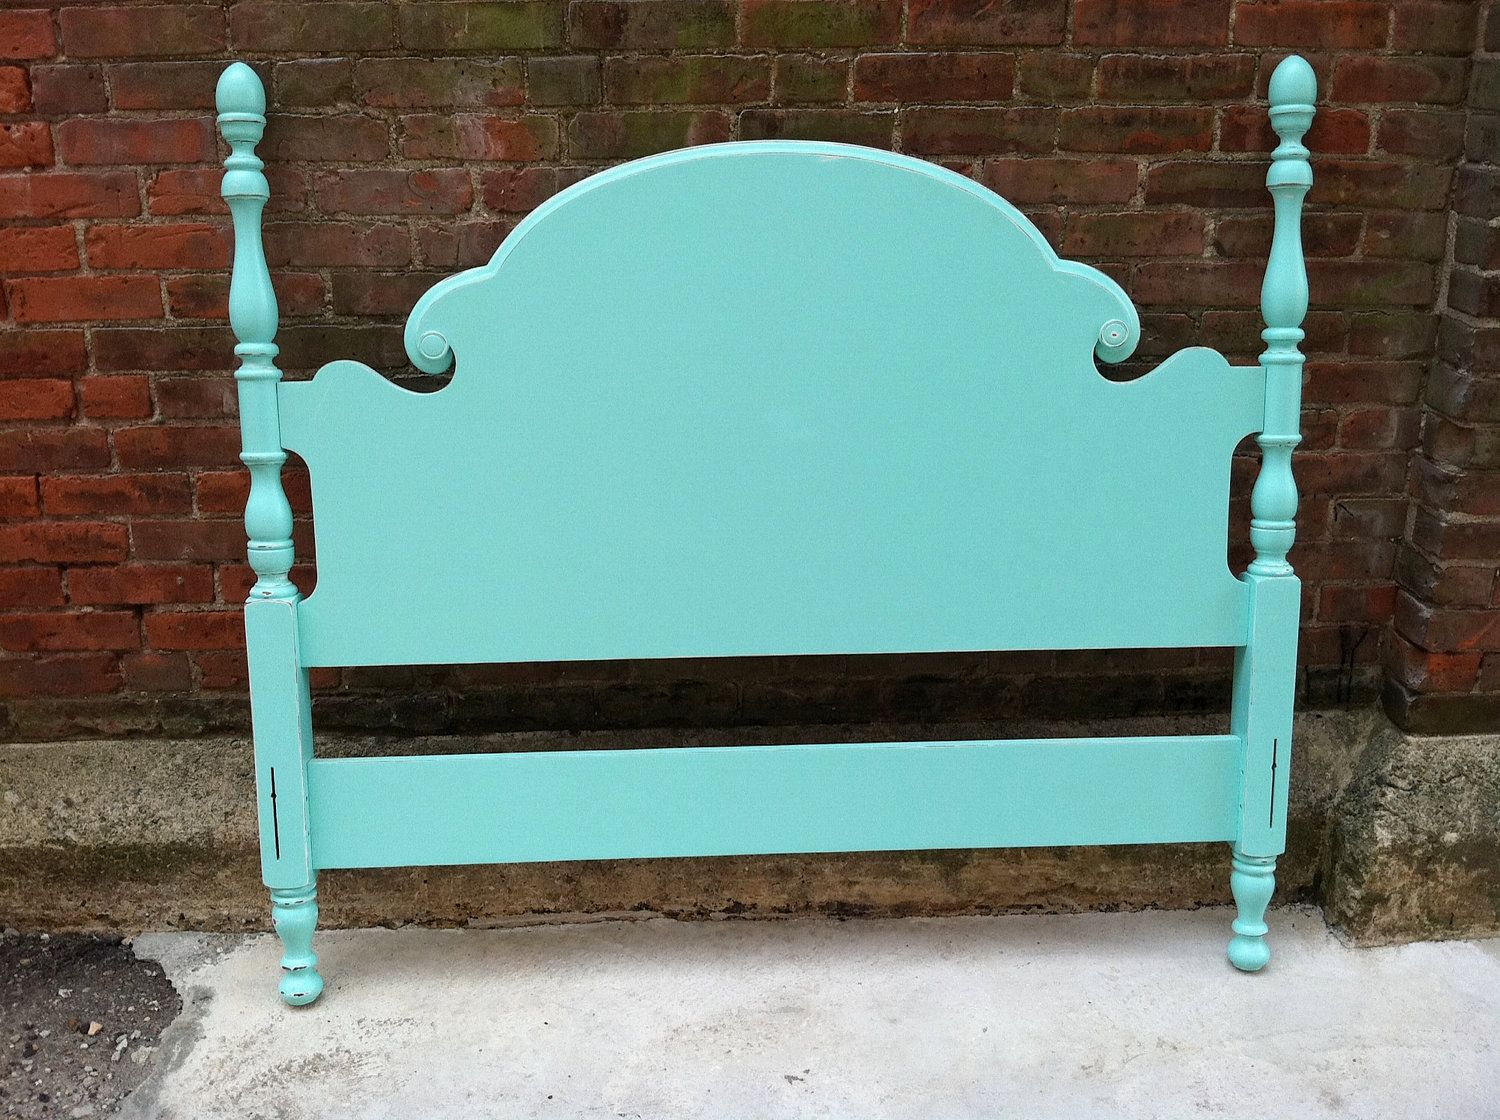 free nyc delivery aqua painted full double bed complete with headboard footboard and wooden side rails